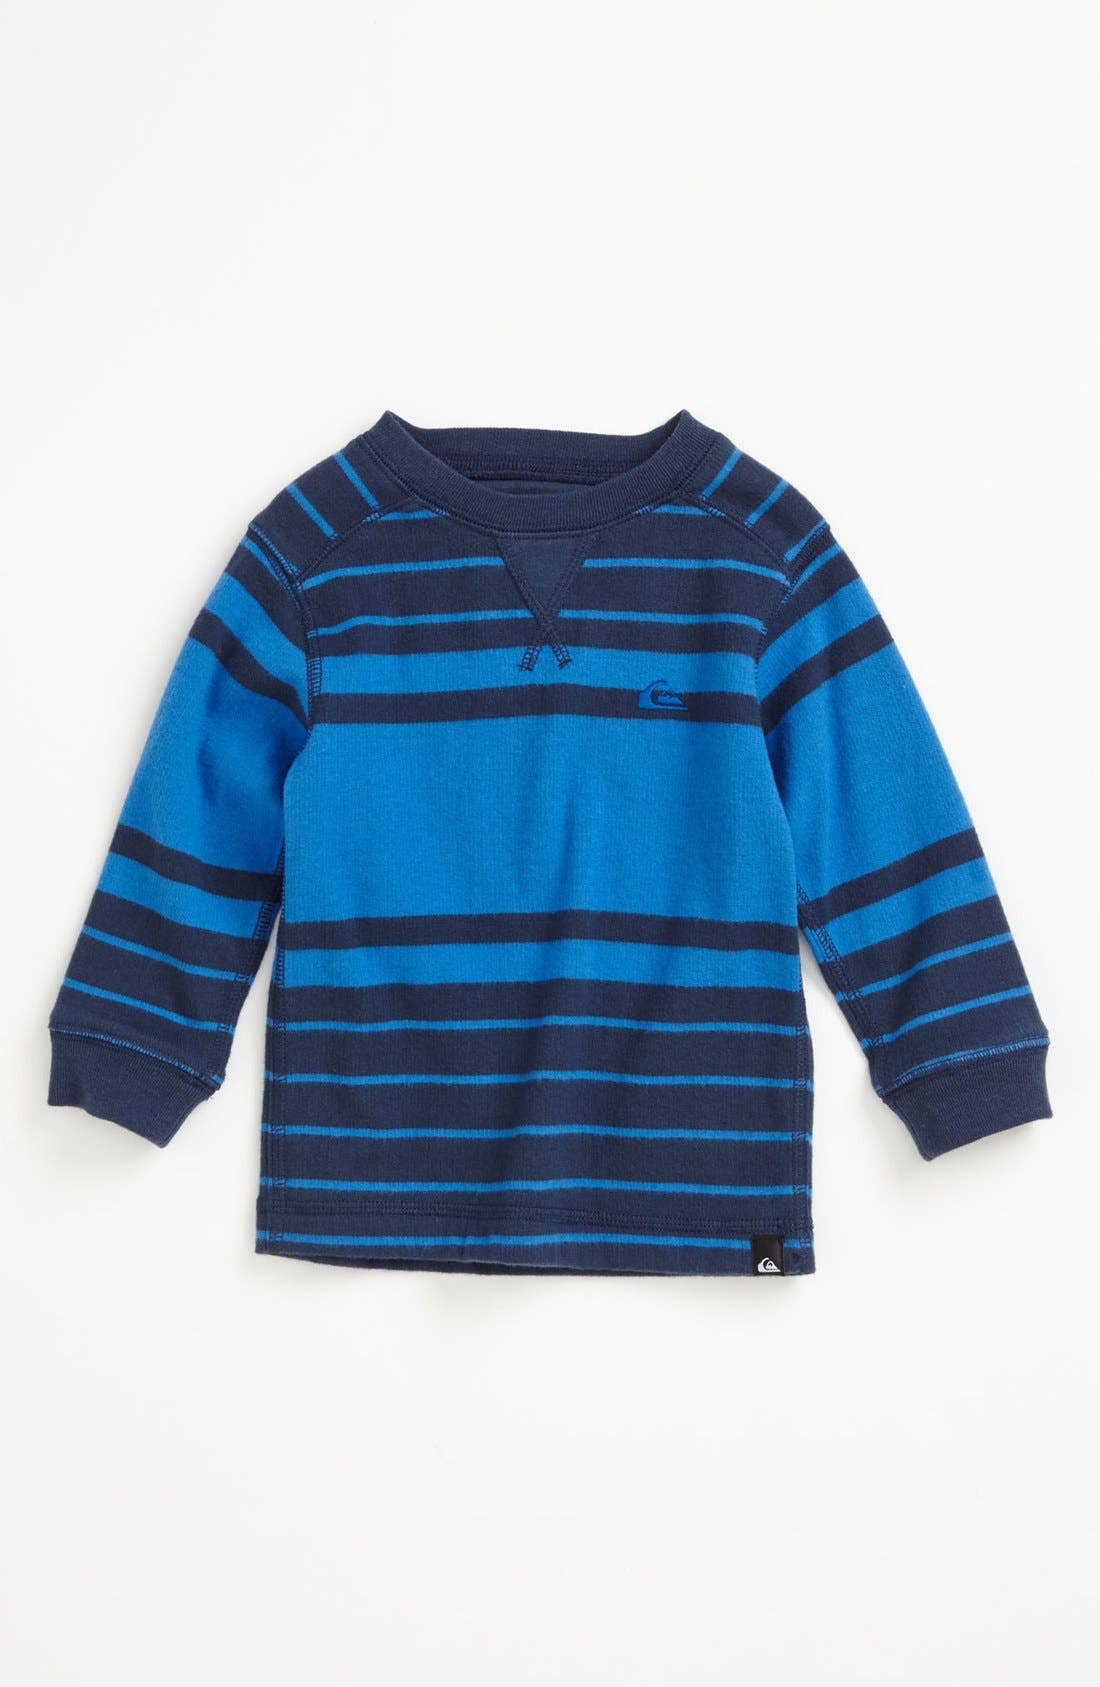 Alternate Image 1 Selected - Quiksilver 'Snit' Stripe Shirt (Toddler Boys)